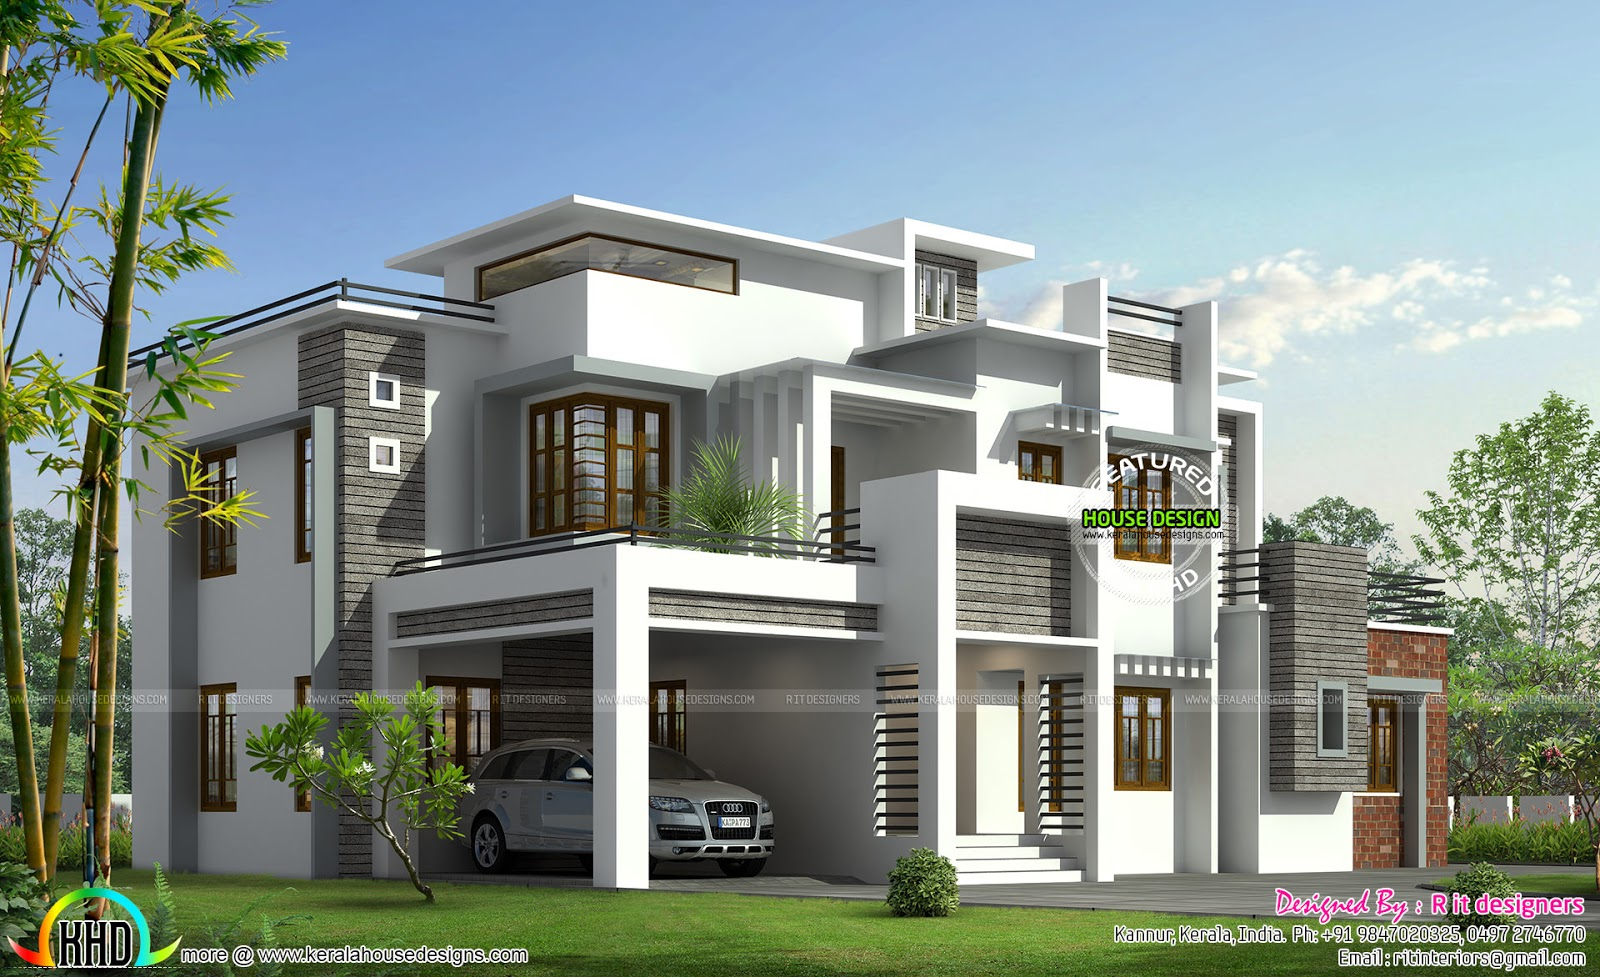 4 Bedroom Modular Home Box Model Contemporary House Kerala Home Design And